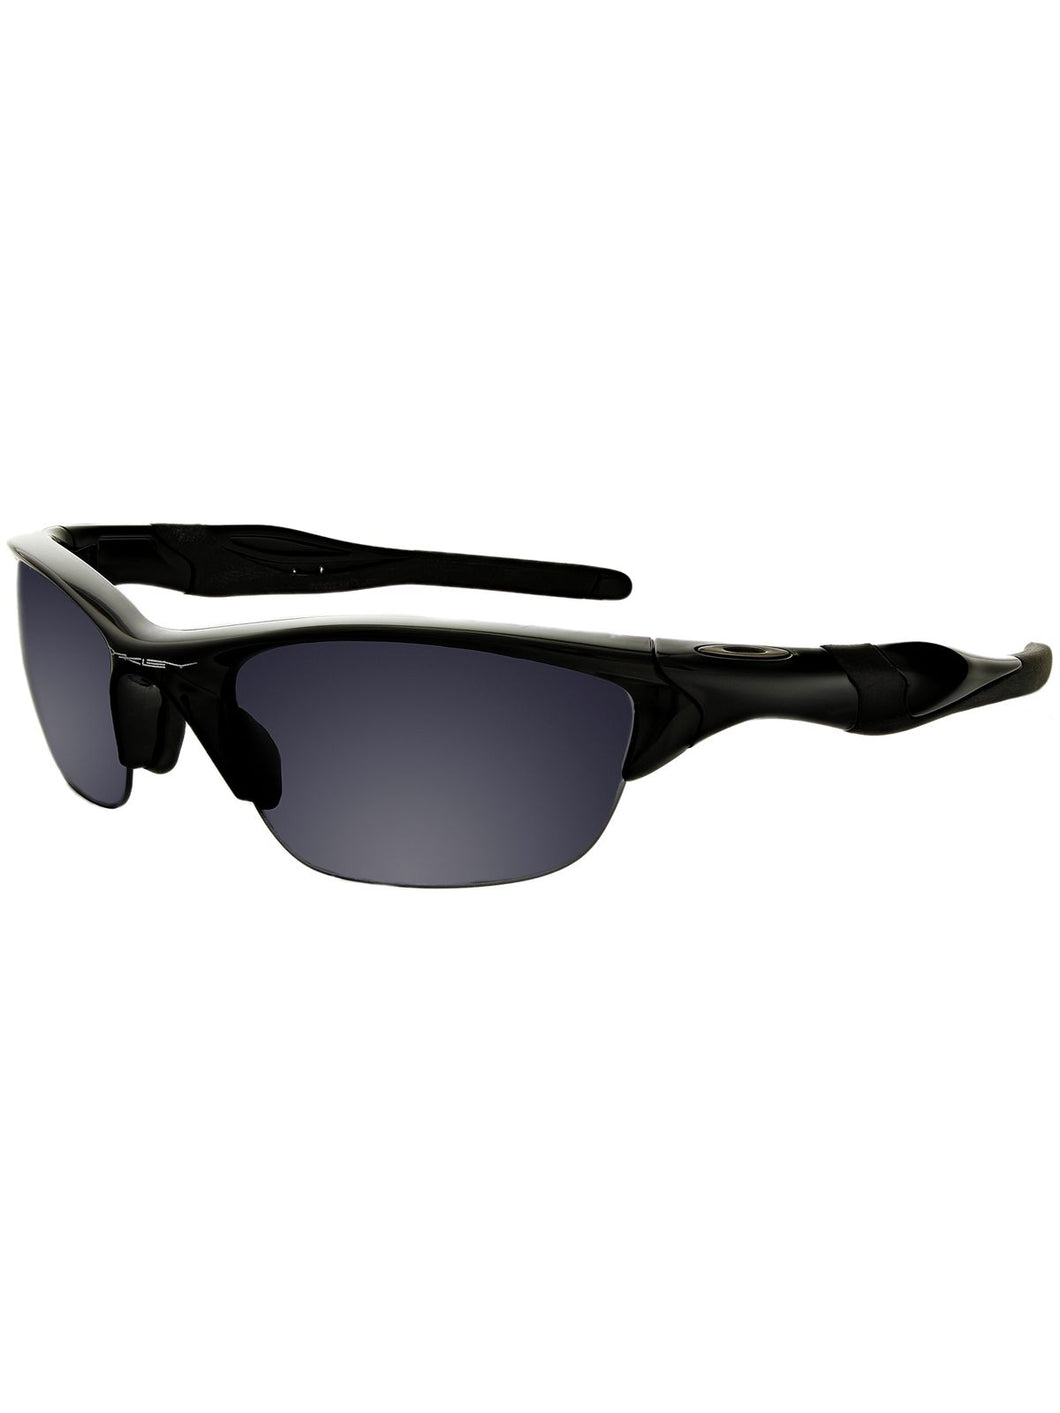 Oakley Sunglasses Mens OO9144-01 Half Jacket 2.0 Polished Black Iridium - Watchbatteries